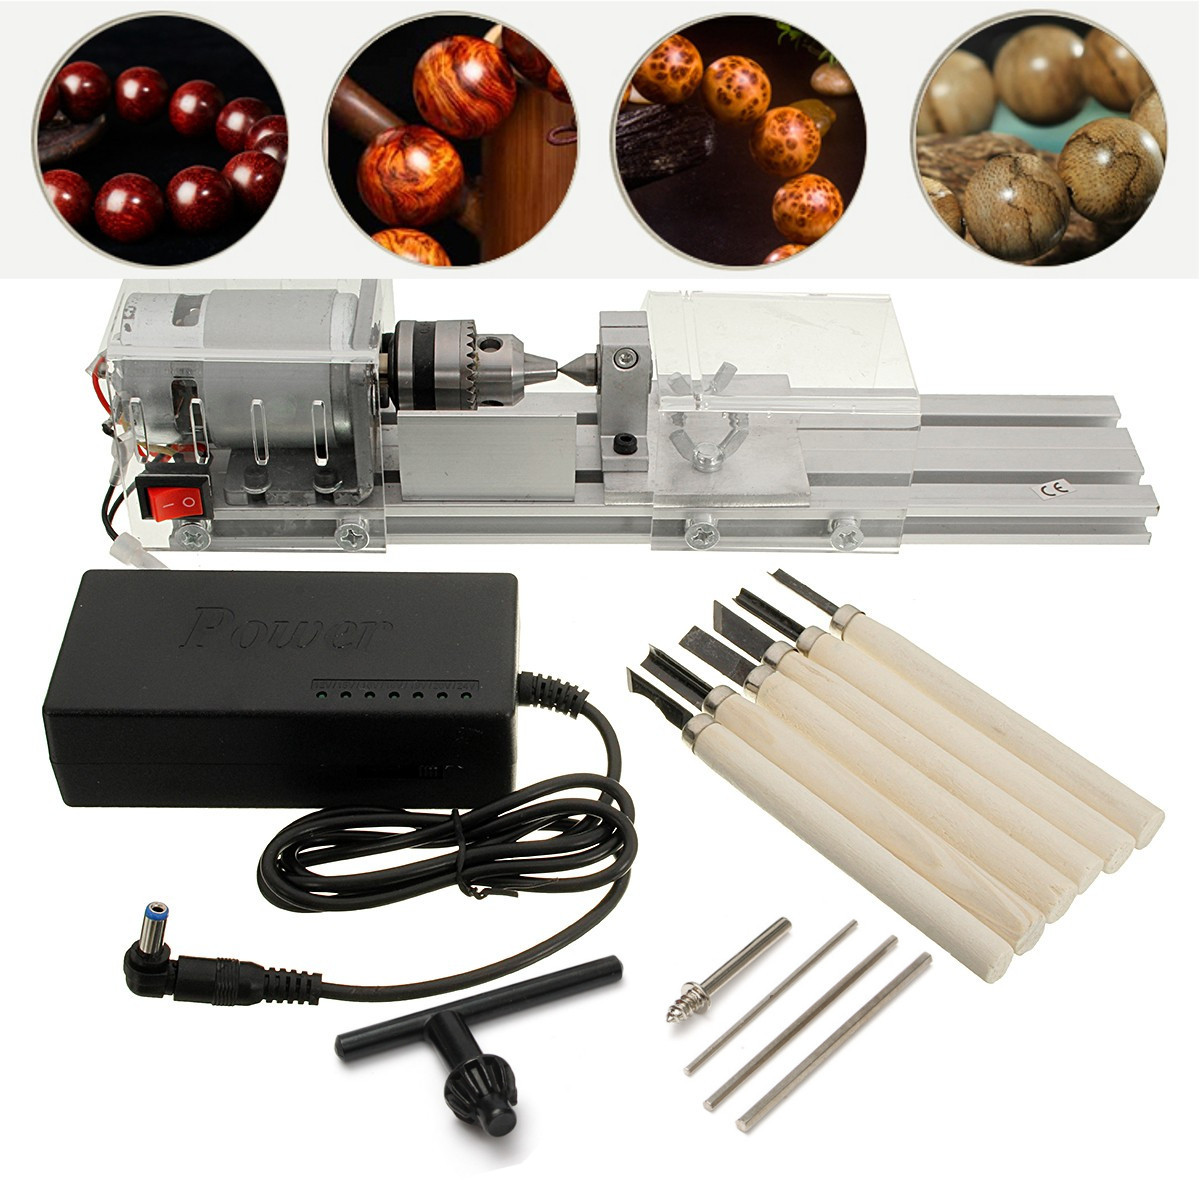 Mini Lathe Beads Machine Woodworking DIY Lathe Standard with Power DC 24V-36V by